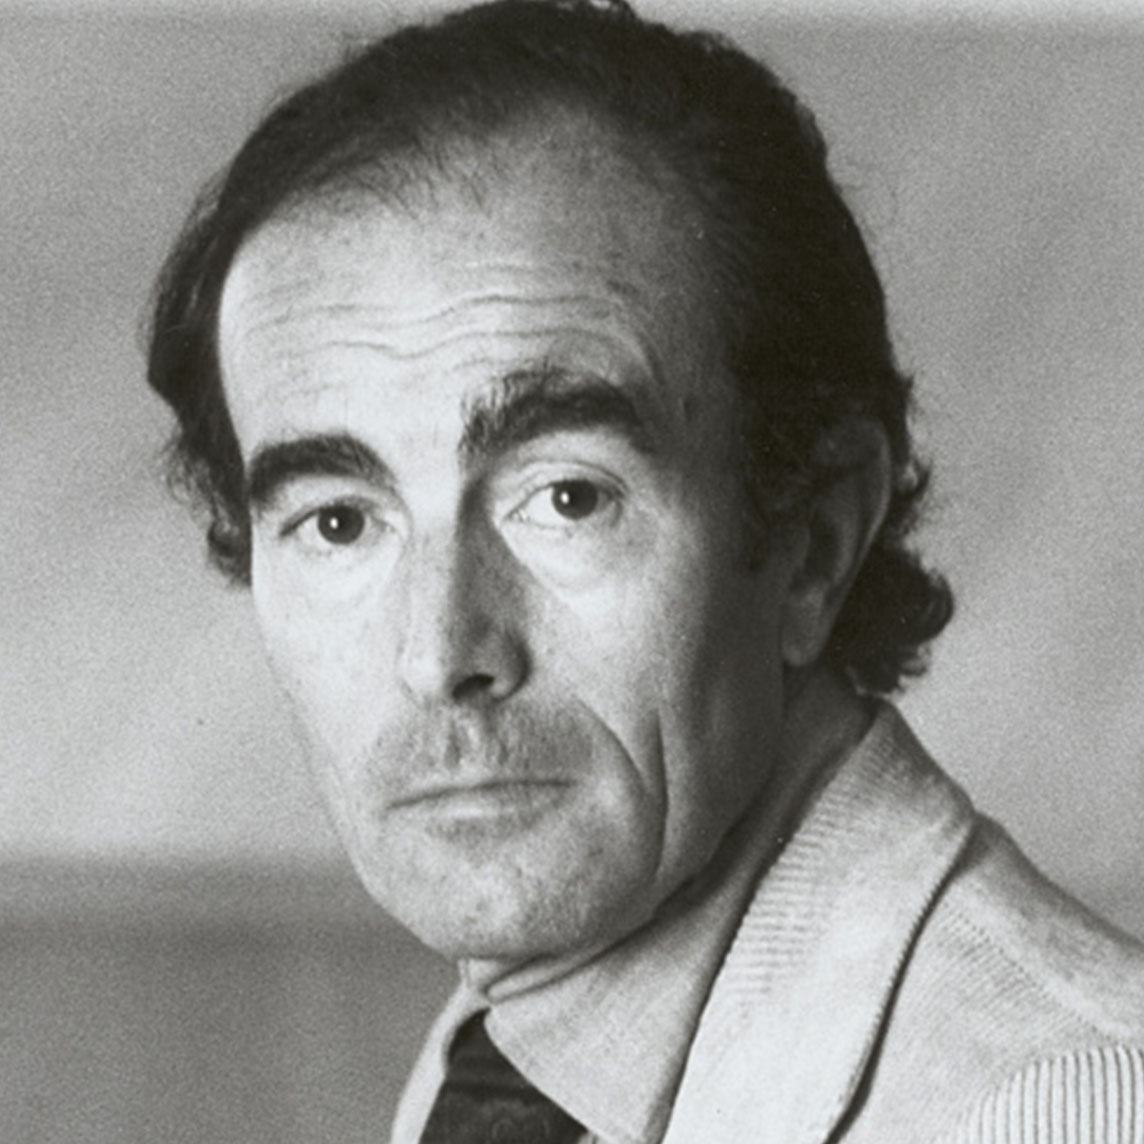 """In 1920 Magistretti was born in Milan, the city in which he graduated in architecture in 1945, and where his professional career has spun its story ever since, chiefly in the fields of architecture, town planning and industrial design. The first recognition of his work came in 1948, when he won the Gran Premio at the 8th Triennale. After that came almost forty years of activity with other prizes and awards in recognition of Magistretti's work in various sectors in different countries.  Giving lessons and lectures in various faculties of architecture and schools of design in Italy and abroad, from Milan to New York, from Paris to London, a city to which he is particularly devoted, he has been an """"Honorary Fellow"""" of the Royal College of Art since 1983.  Furniture, lamps and other objects that he designed may be found all over the world and the most important design museums have given exhibitions in his honour and kept examples of his work in their permanent collections.  Magistretti's research has been continuous - into design, the culture of the project and innovative experimentation with materials and space solutions, not to mention shapes and functions far from the rigours of fashion that they have passed through during the years. He started designing for Cassina in 1960, and from that date on his signature is to be found on very many products. We recall in particular the Maralunga sofa of 1973 and the Nuvola Rossa (1977) bookcase, which are still indisputable international best-sellers and have provoked hordes of imitations which have not been able to echo even faintly the success of the originals."""